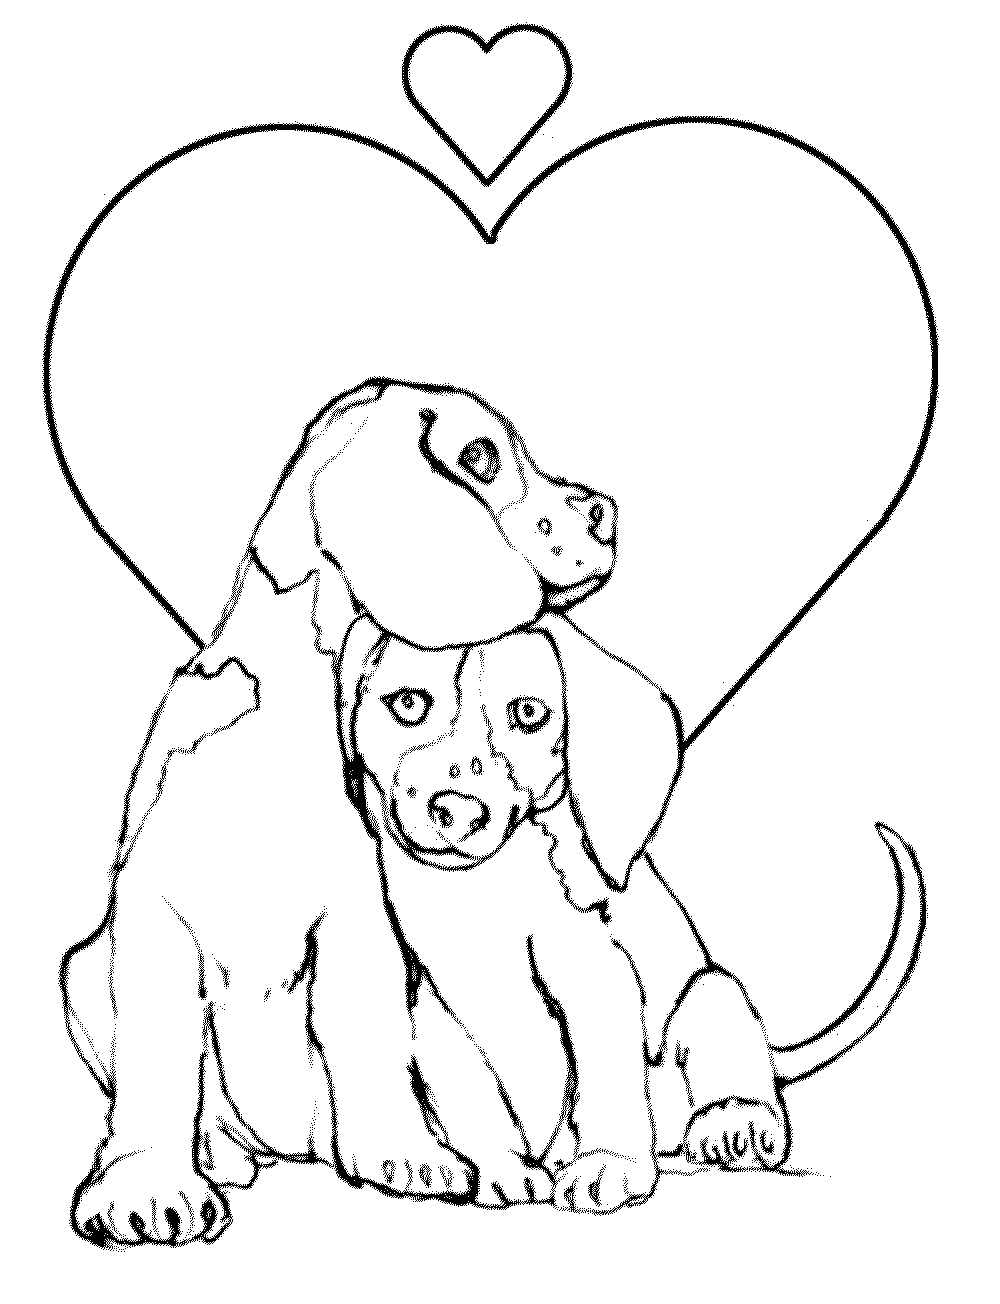 biscuit the dog coloring pages biscuit the puppy coloring pages coloring home coloring pages dog biscuit the